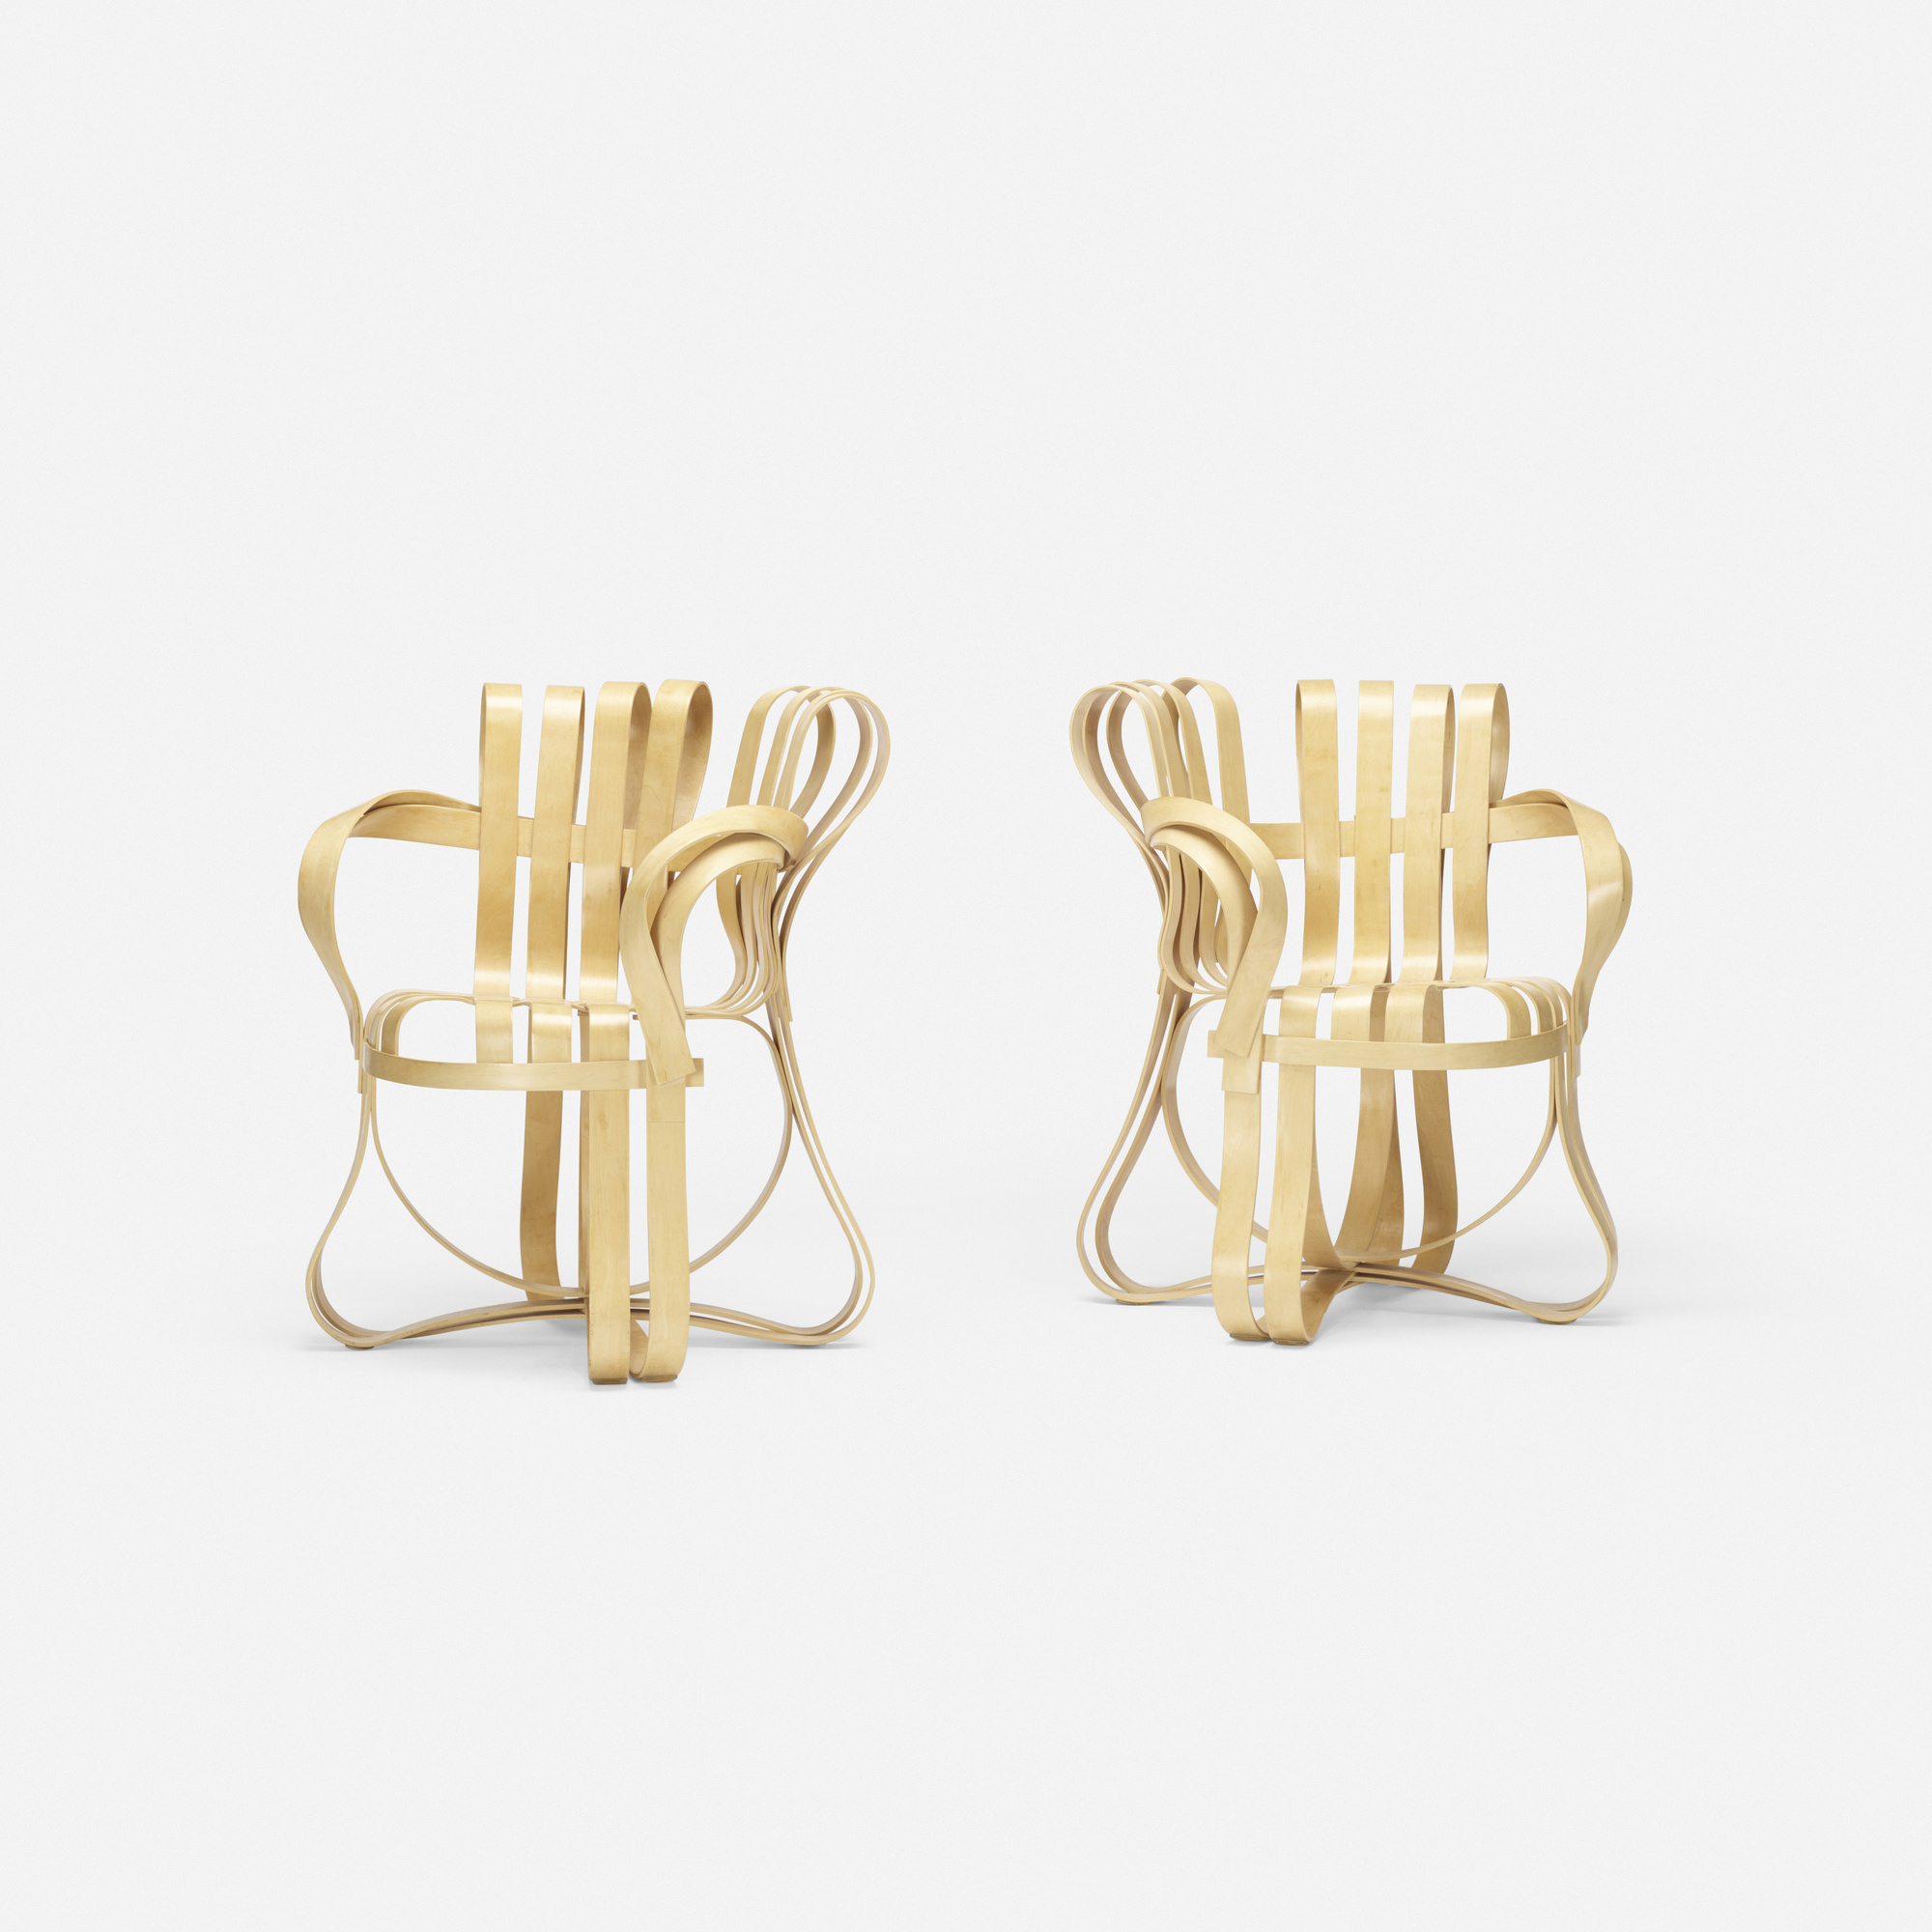 305: Frank Gehry / Cross Check armchairs, pair (1 of 2)